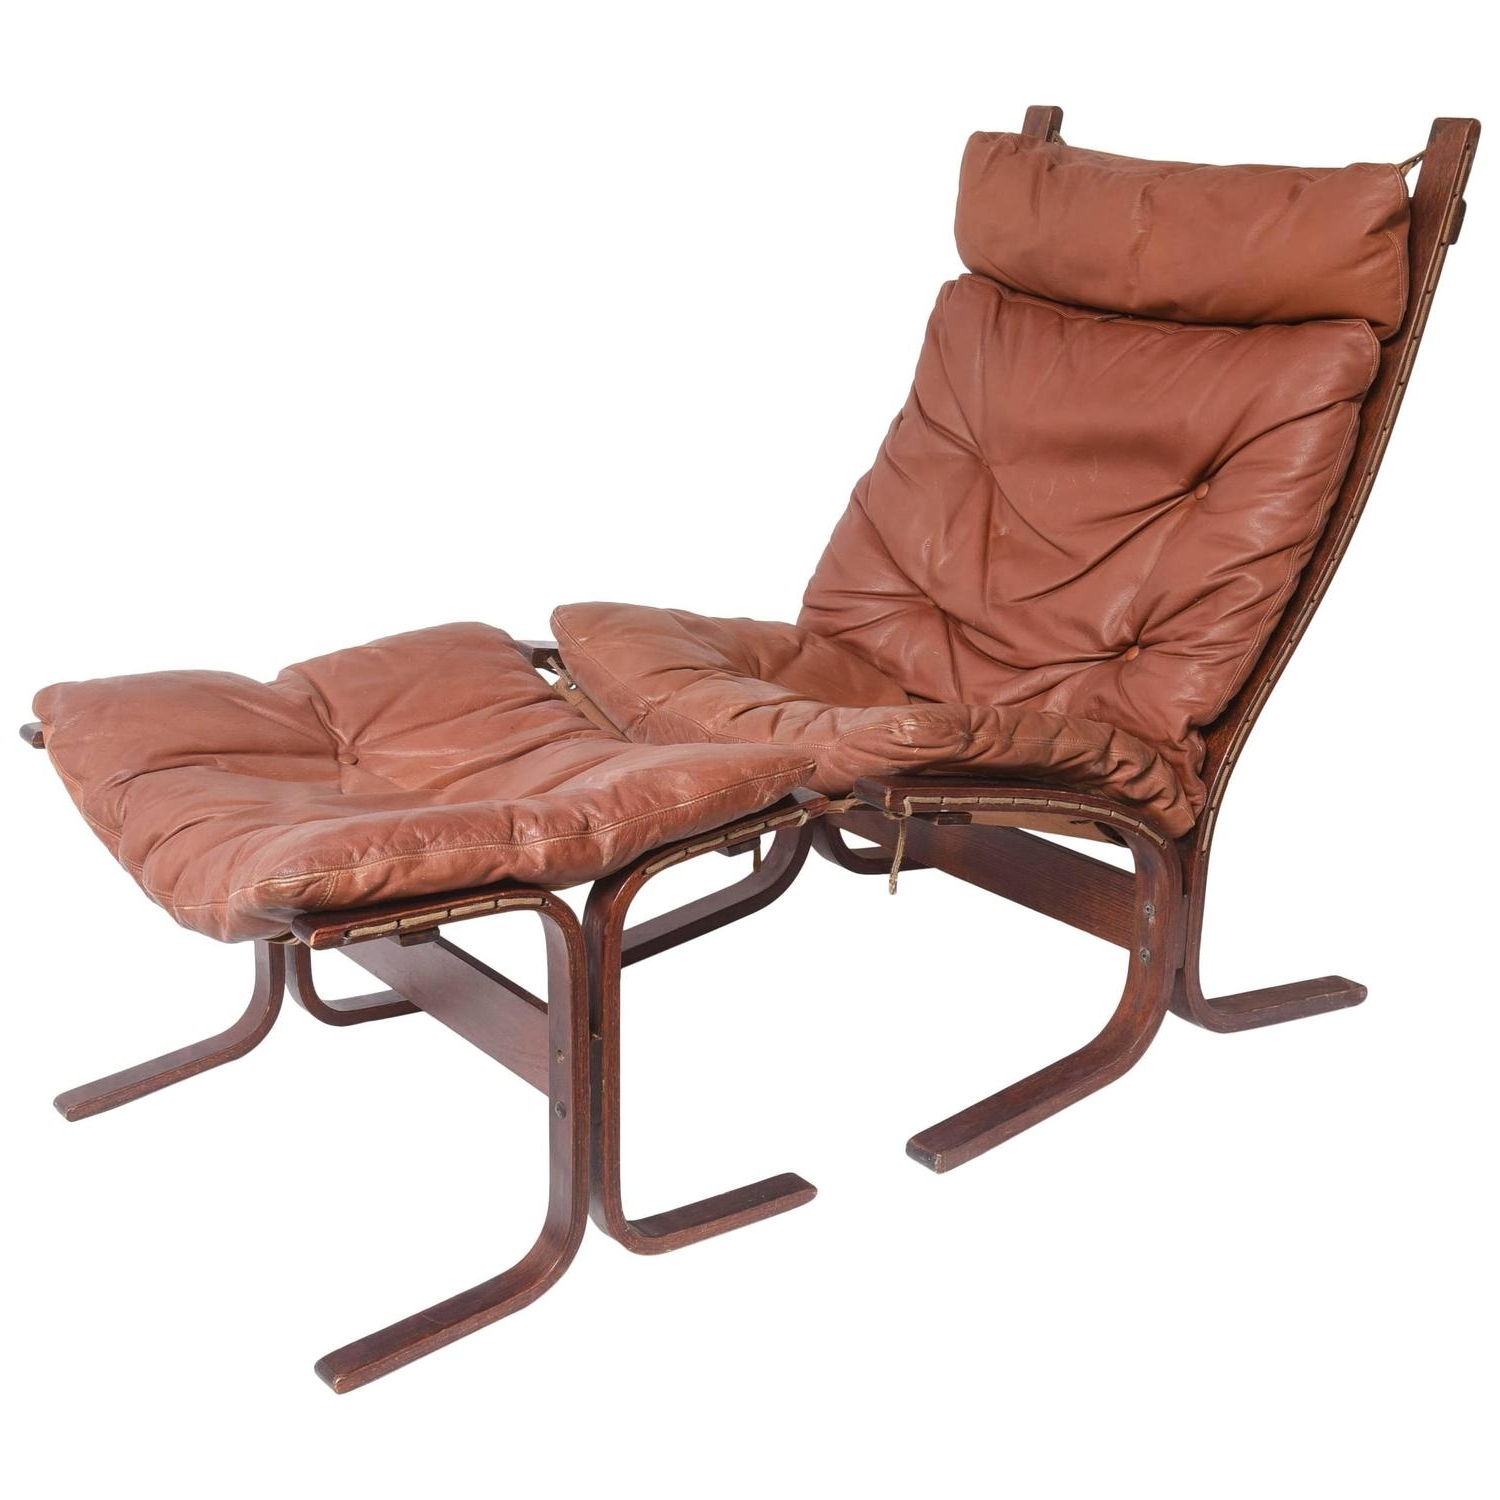 Fashionable Lounge Chair : Chaise Lounge Chair Scandinavian Chair And Ottoman Pertaining To Chaise Lounge Chairs With Ottoman (View 7 of 15)